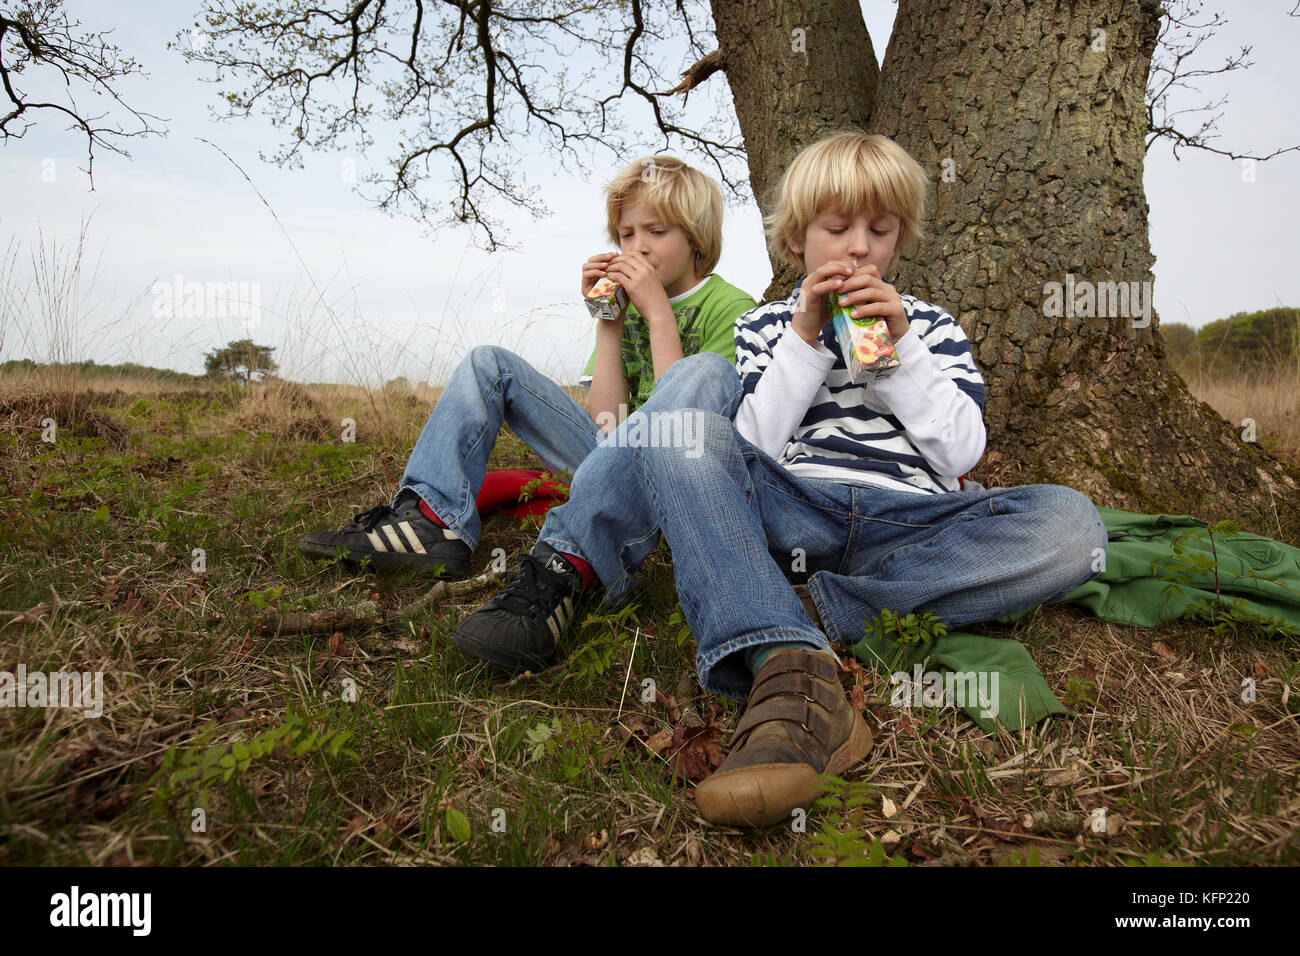 Two young blond haired boys sitting on ground, leaning against a tree drinking with straw from a small fruit juice - Stock Image